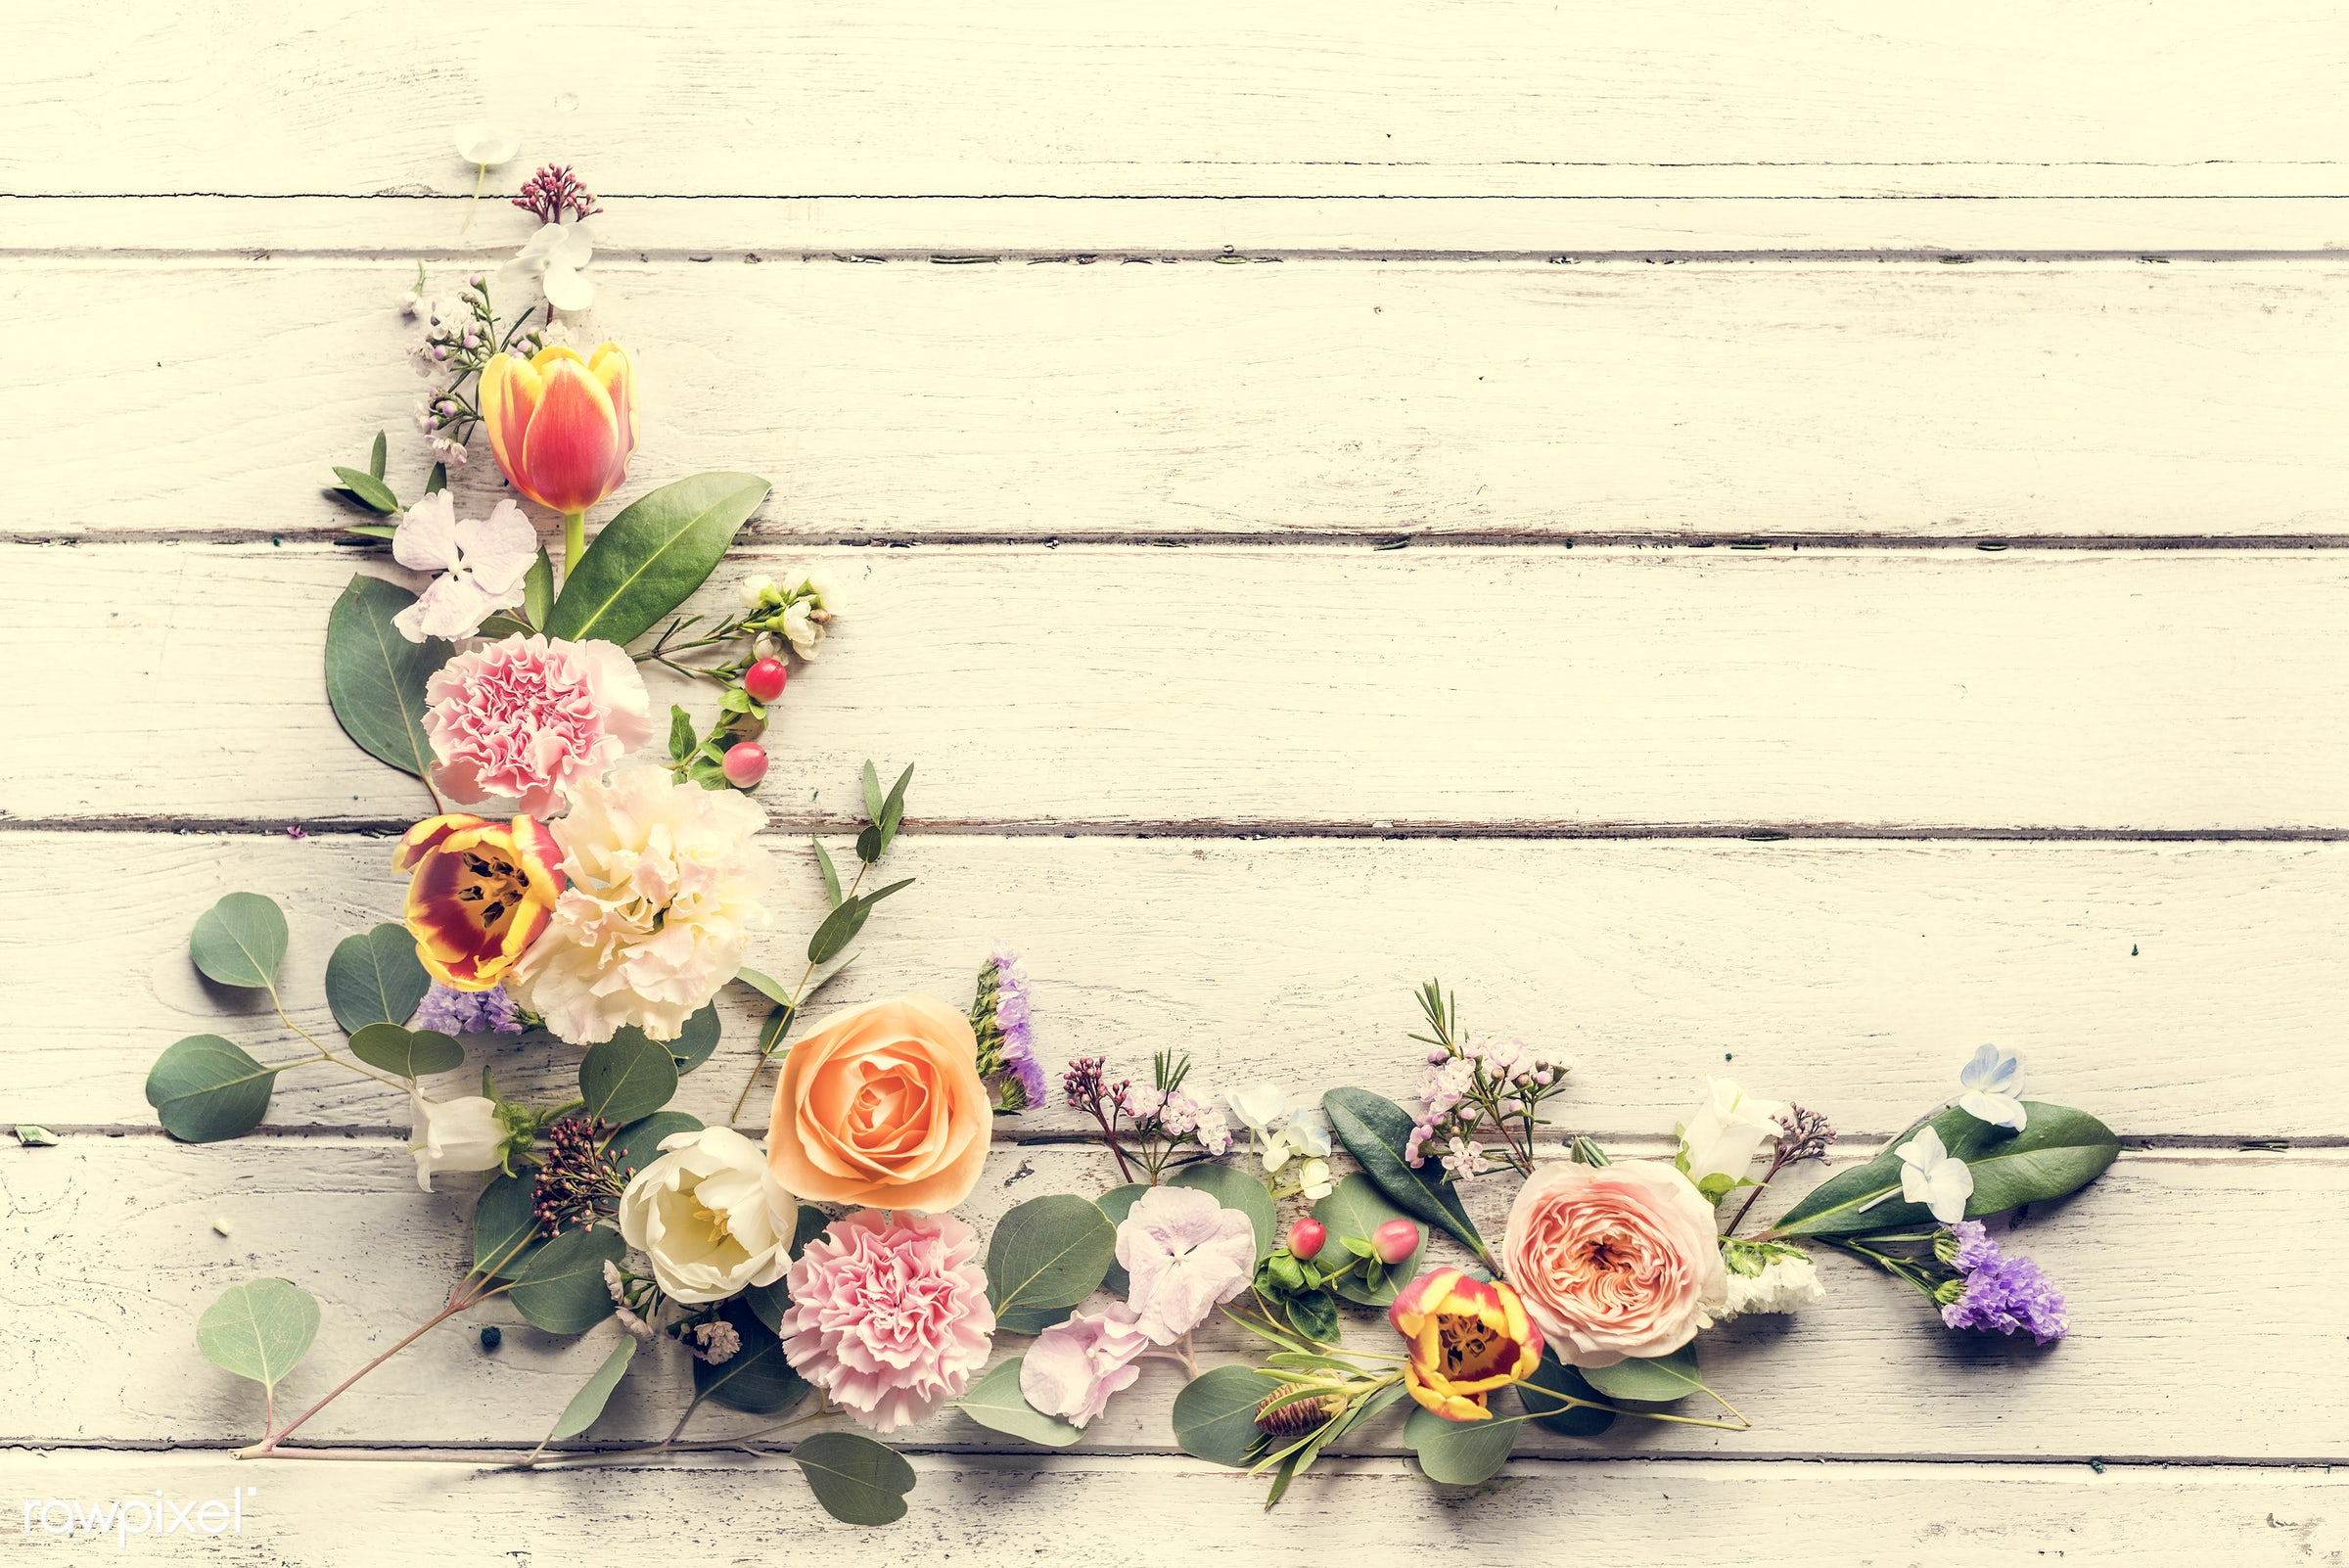 craft, aromatic, decorative, handicraft, beauty, collection, spring, rustic, handiwork, blossom, style, nature, vintage,...